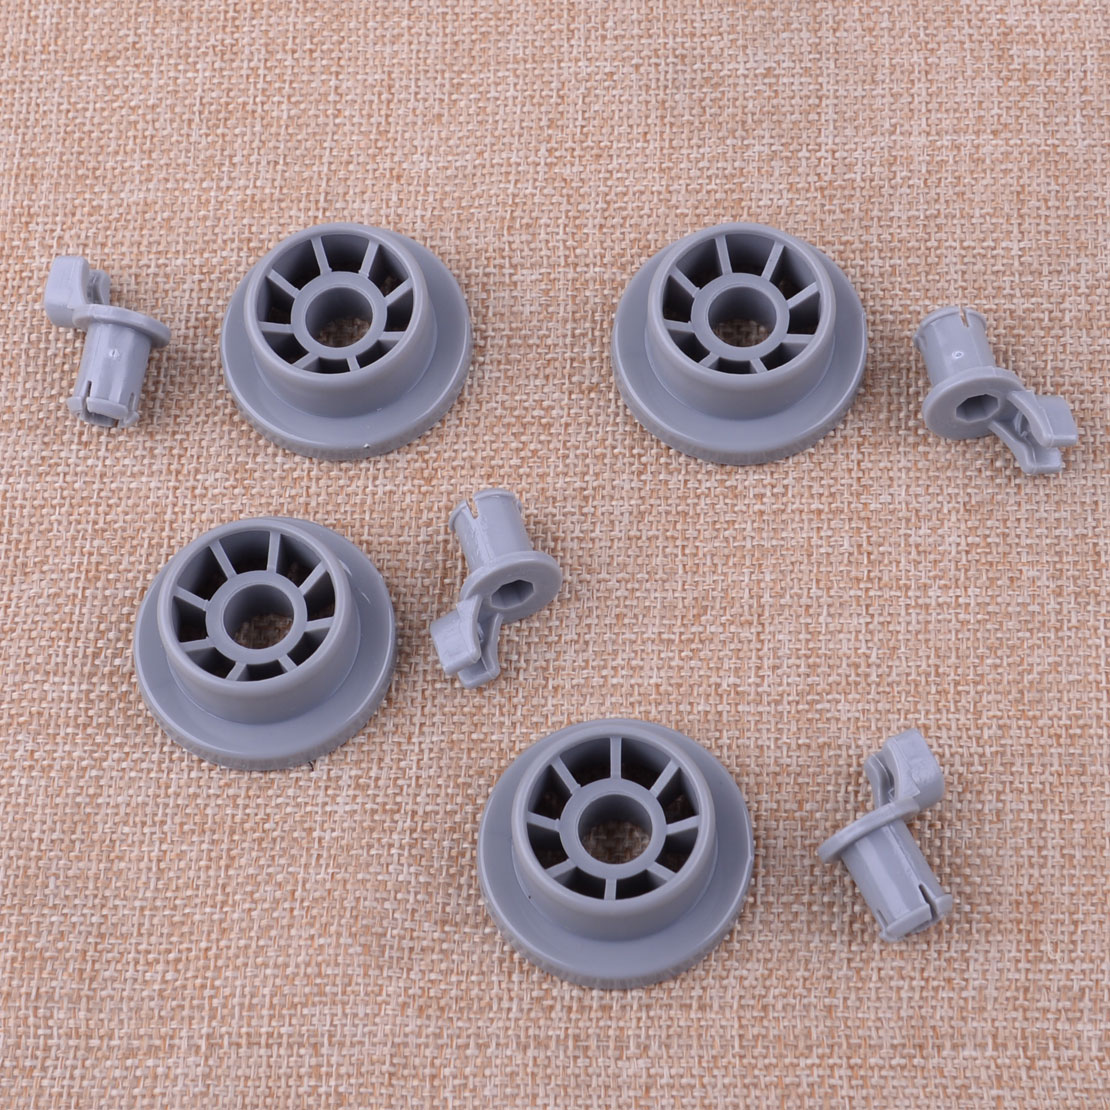 4Pcs Dishwasher Lower Rack Basket Dishrack Wheel Roller Axle Stud Kit Assembly Replacement Fit For Bosch Replacement 165314